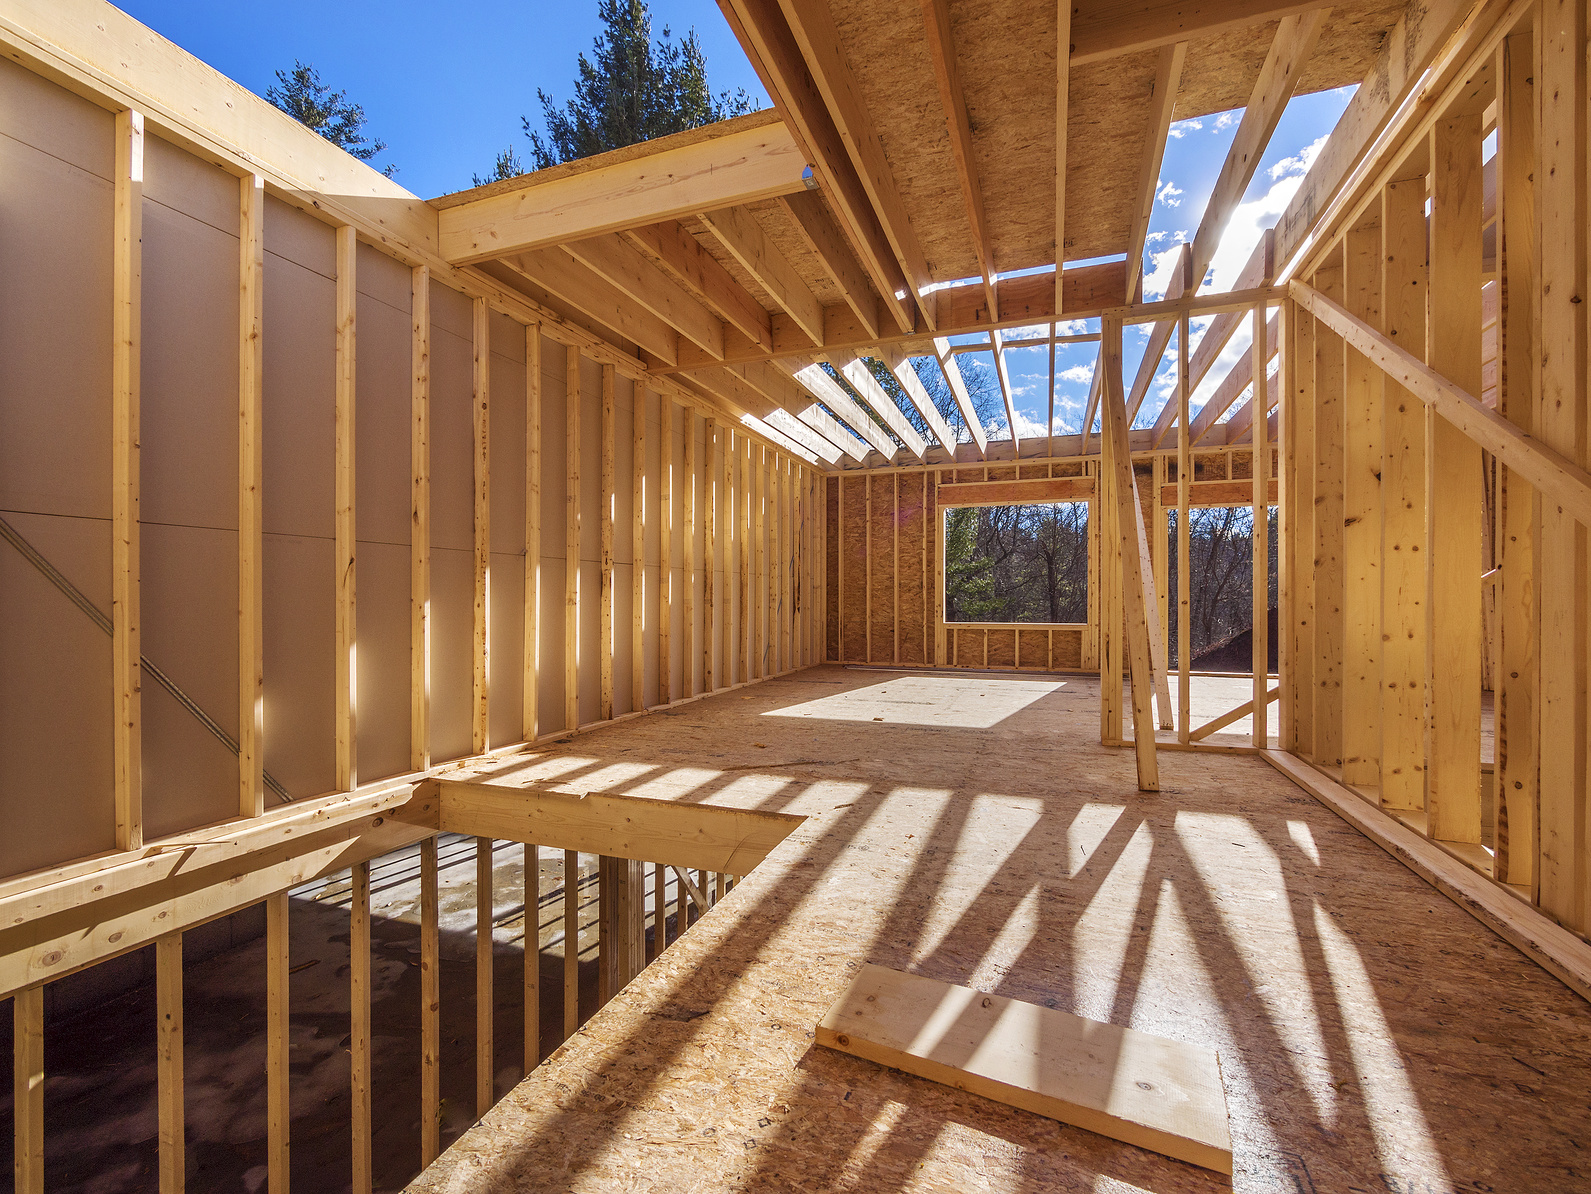 4. Construction & Installation - We coordinate the construction and installation schedule, and provide an estimated timeline. We will discuss the logistics ahead of time with you, and keep you updated regularly.